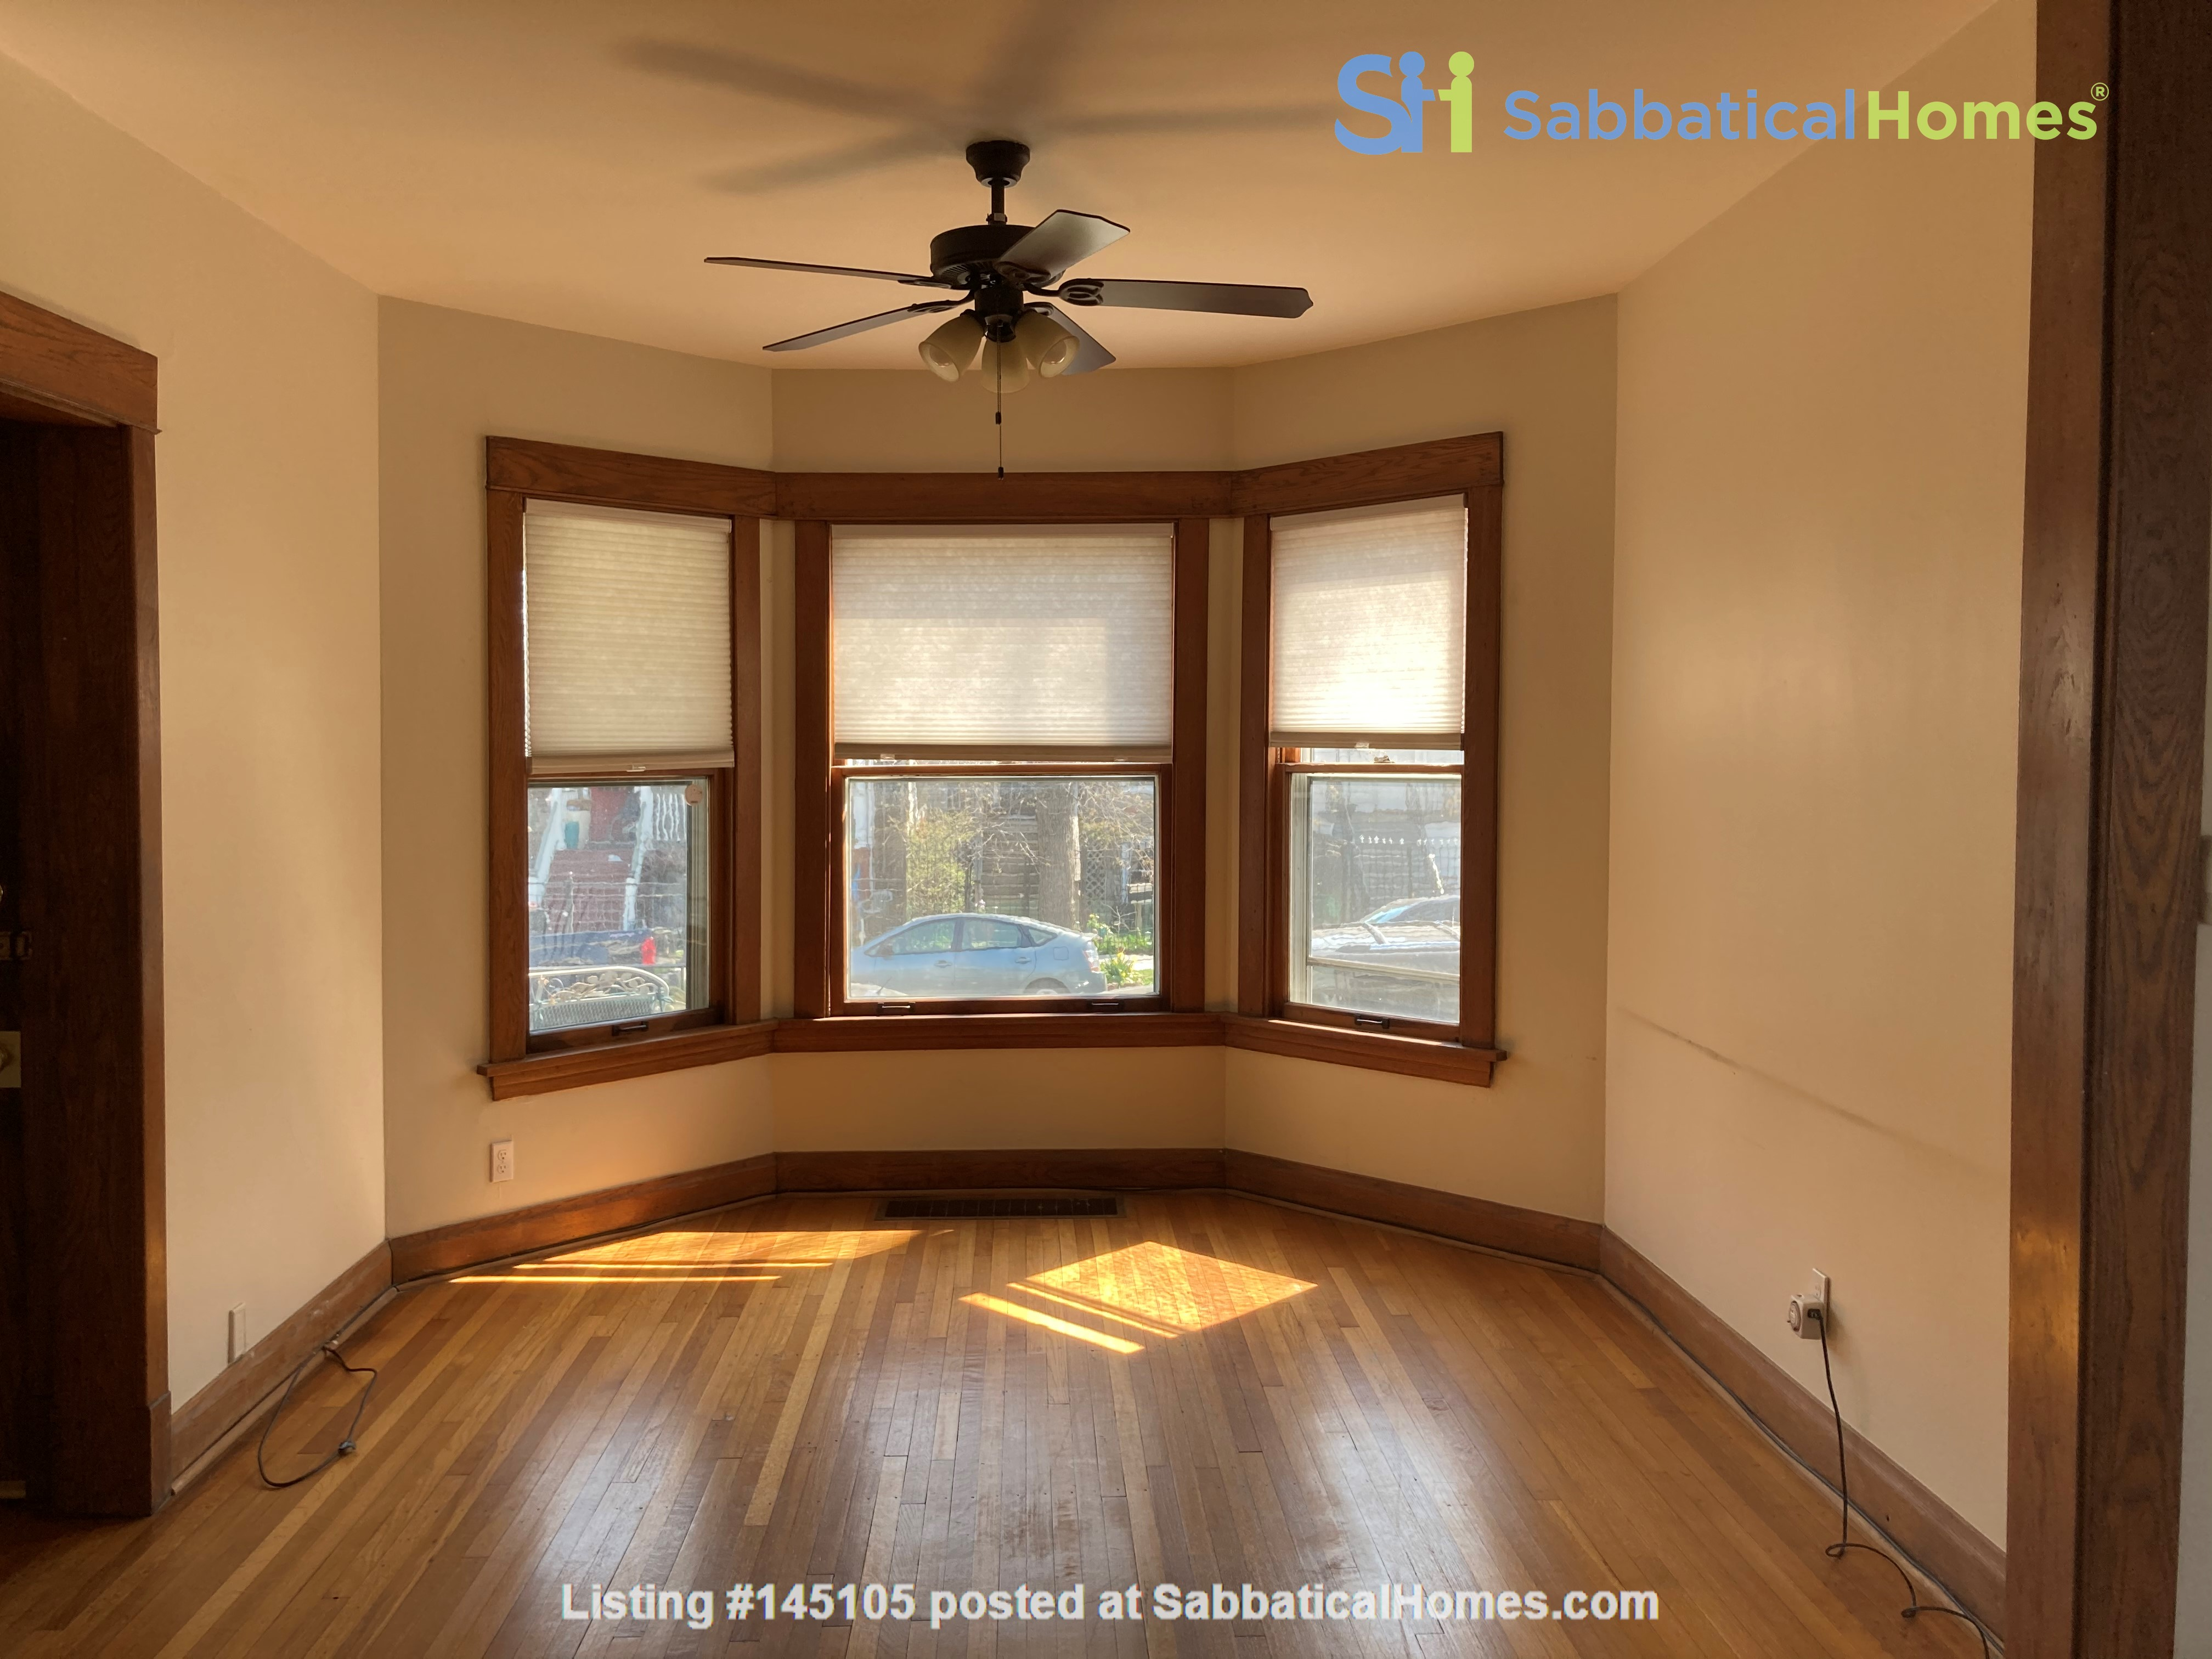 2 BR apartment in charming, vintage two-flat near Horner Park Home Rental in Chicago, Illinois, United States 1